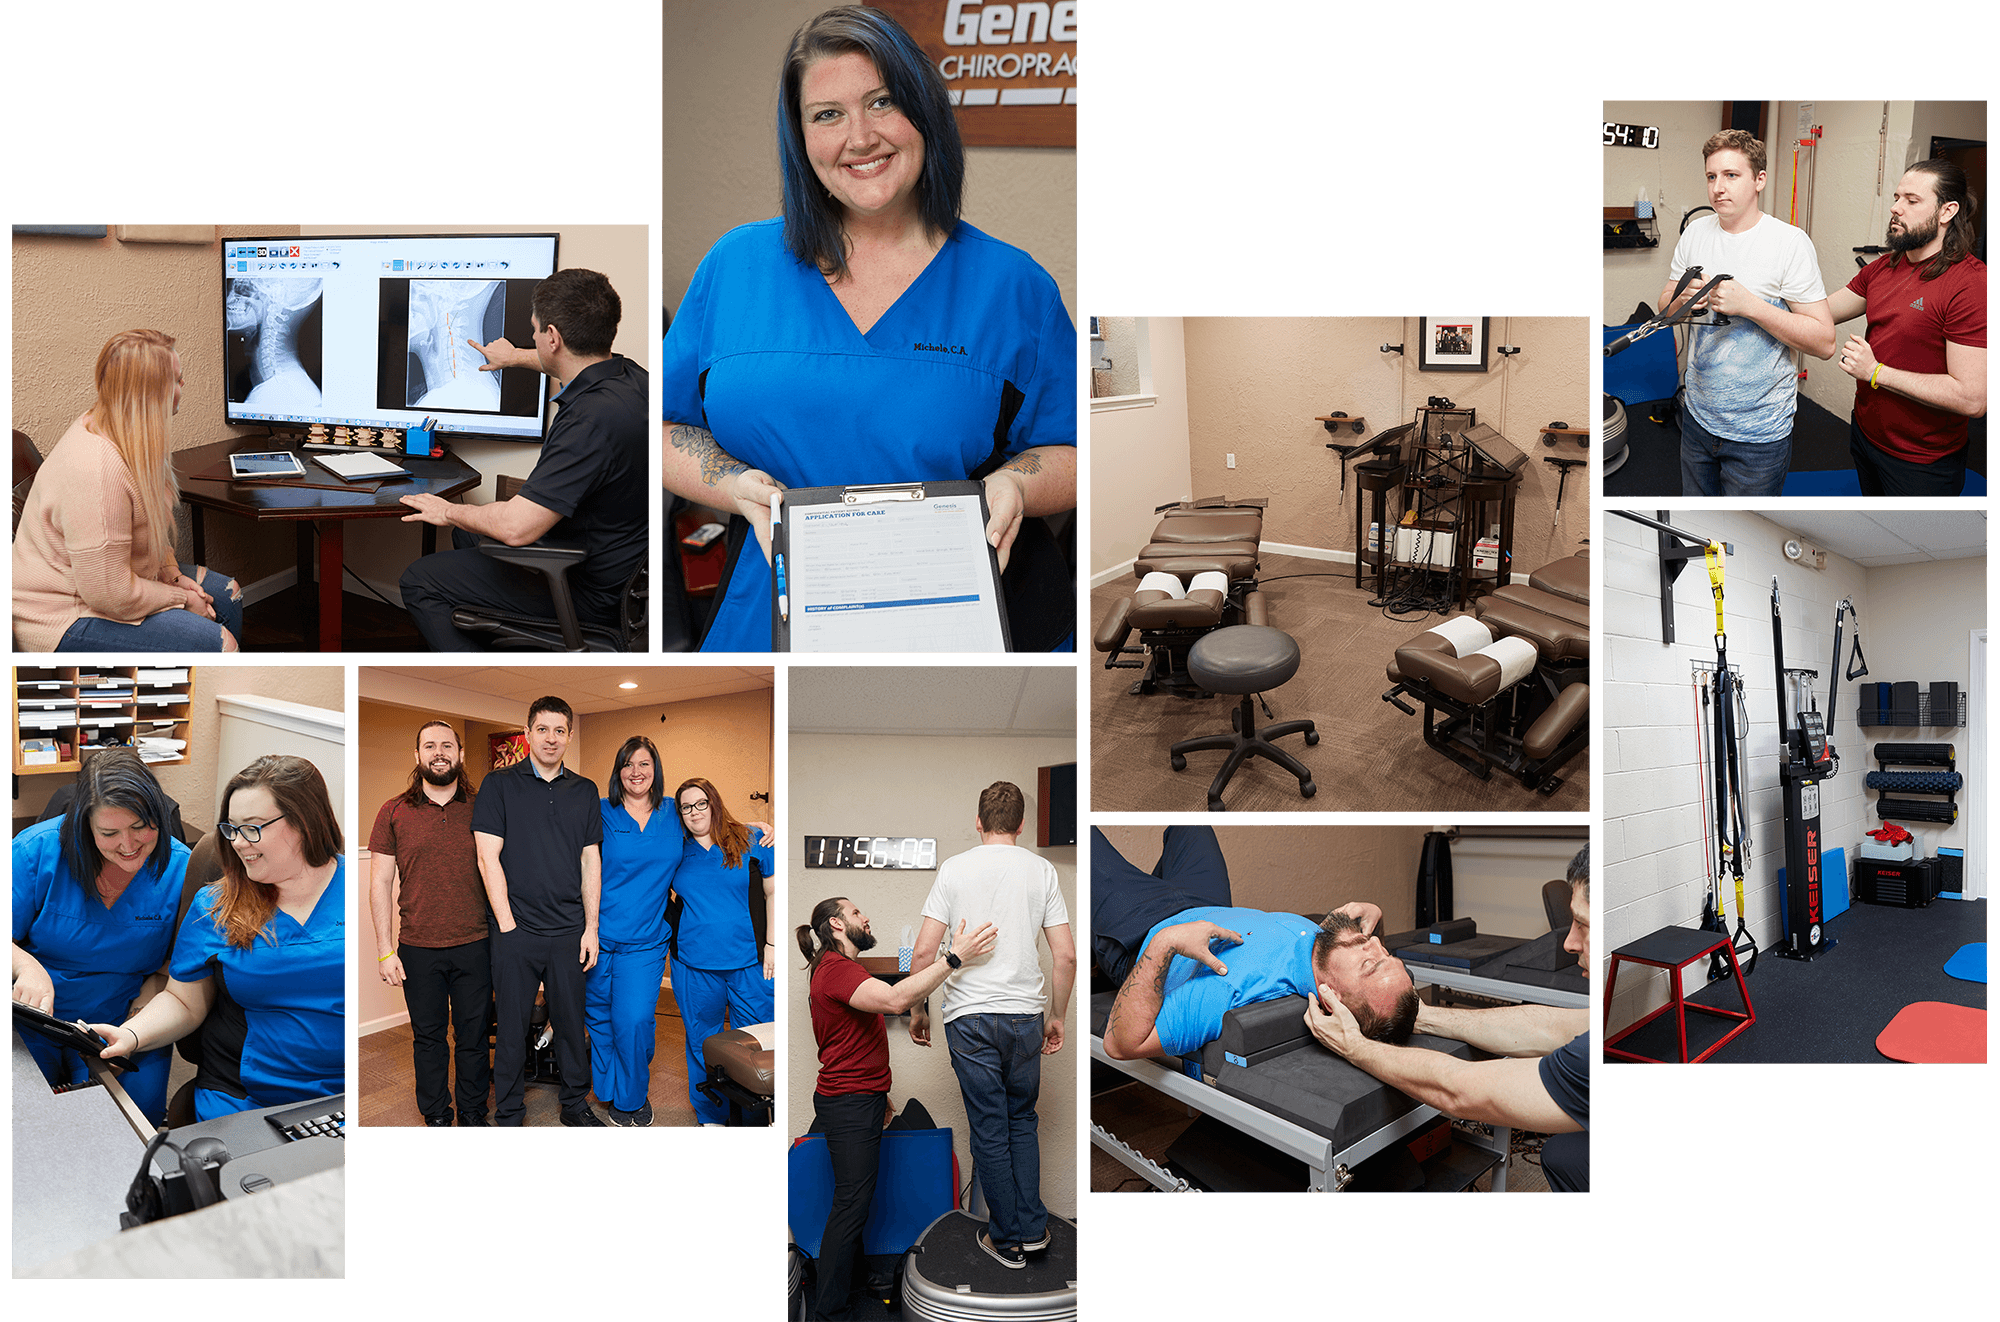 Collage of our Horsham & Warrington Chiropractic team with patients and caring for people in our office